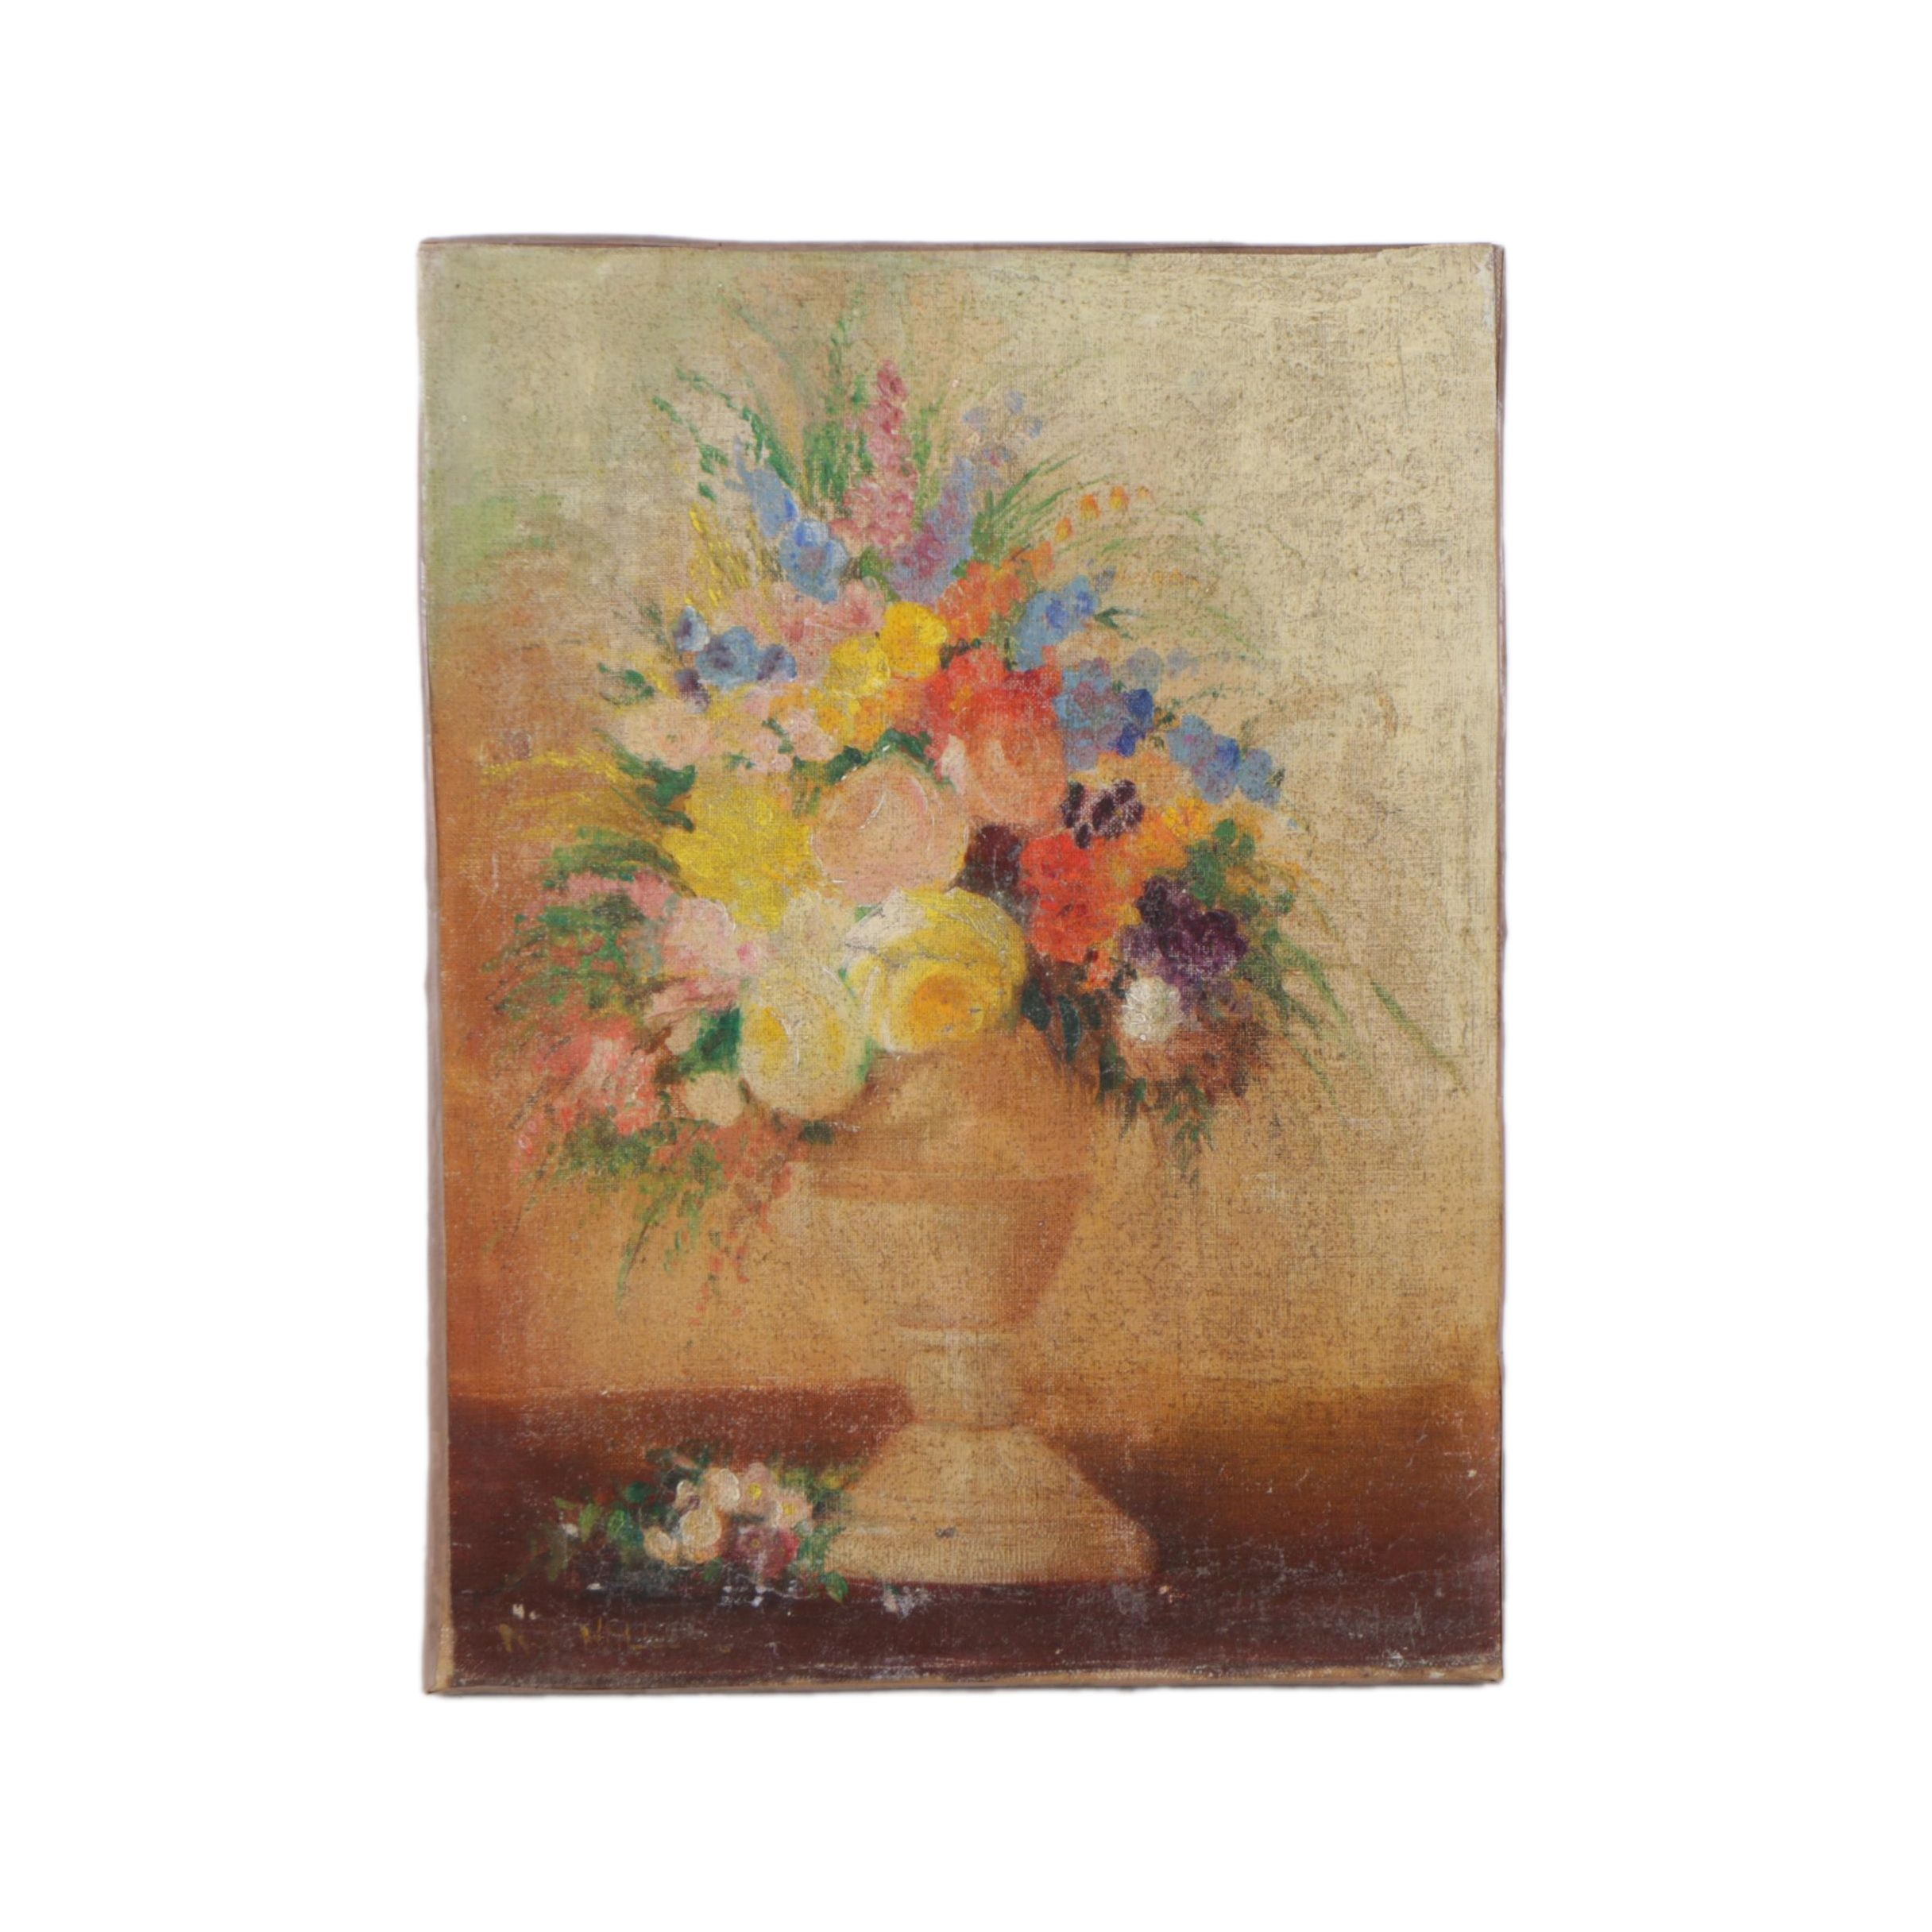 Nellie Ward Haller Oil Painting on Canvas of a Floral Arrangement